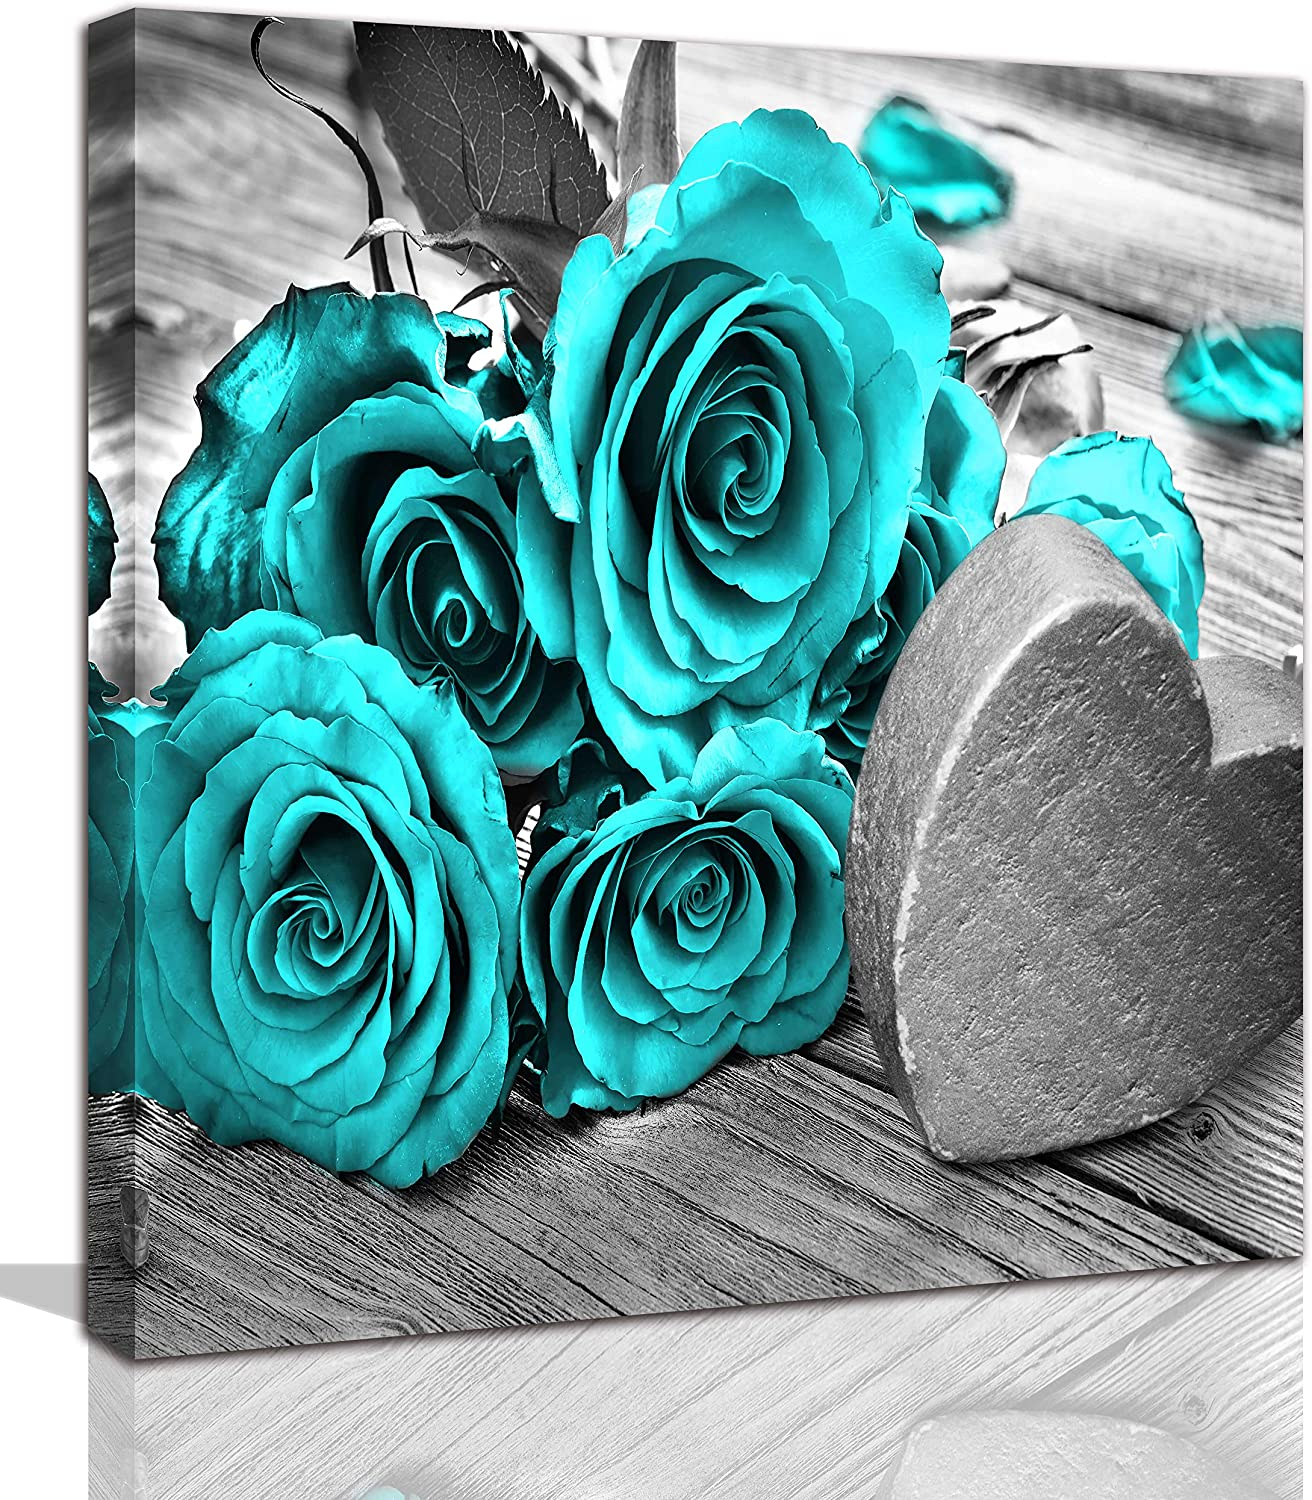 Wall-Art - Prints for Bedroom Rose - Wall-Decor for Bathrooms Black and White Canvas for Living Room Framed Prints Teal Paintings for Kitchen Decoration Poster Gift 14x14 inches